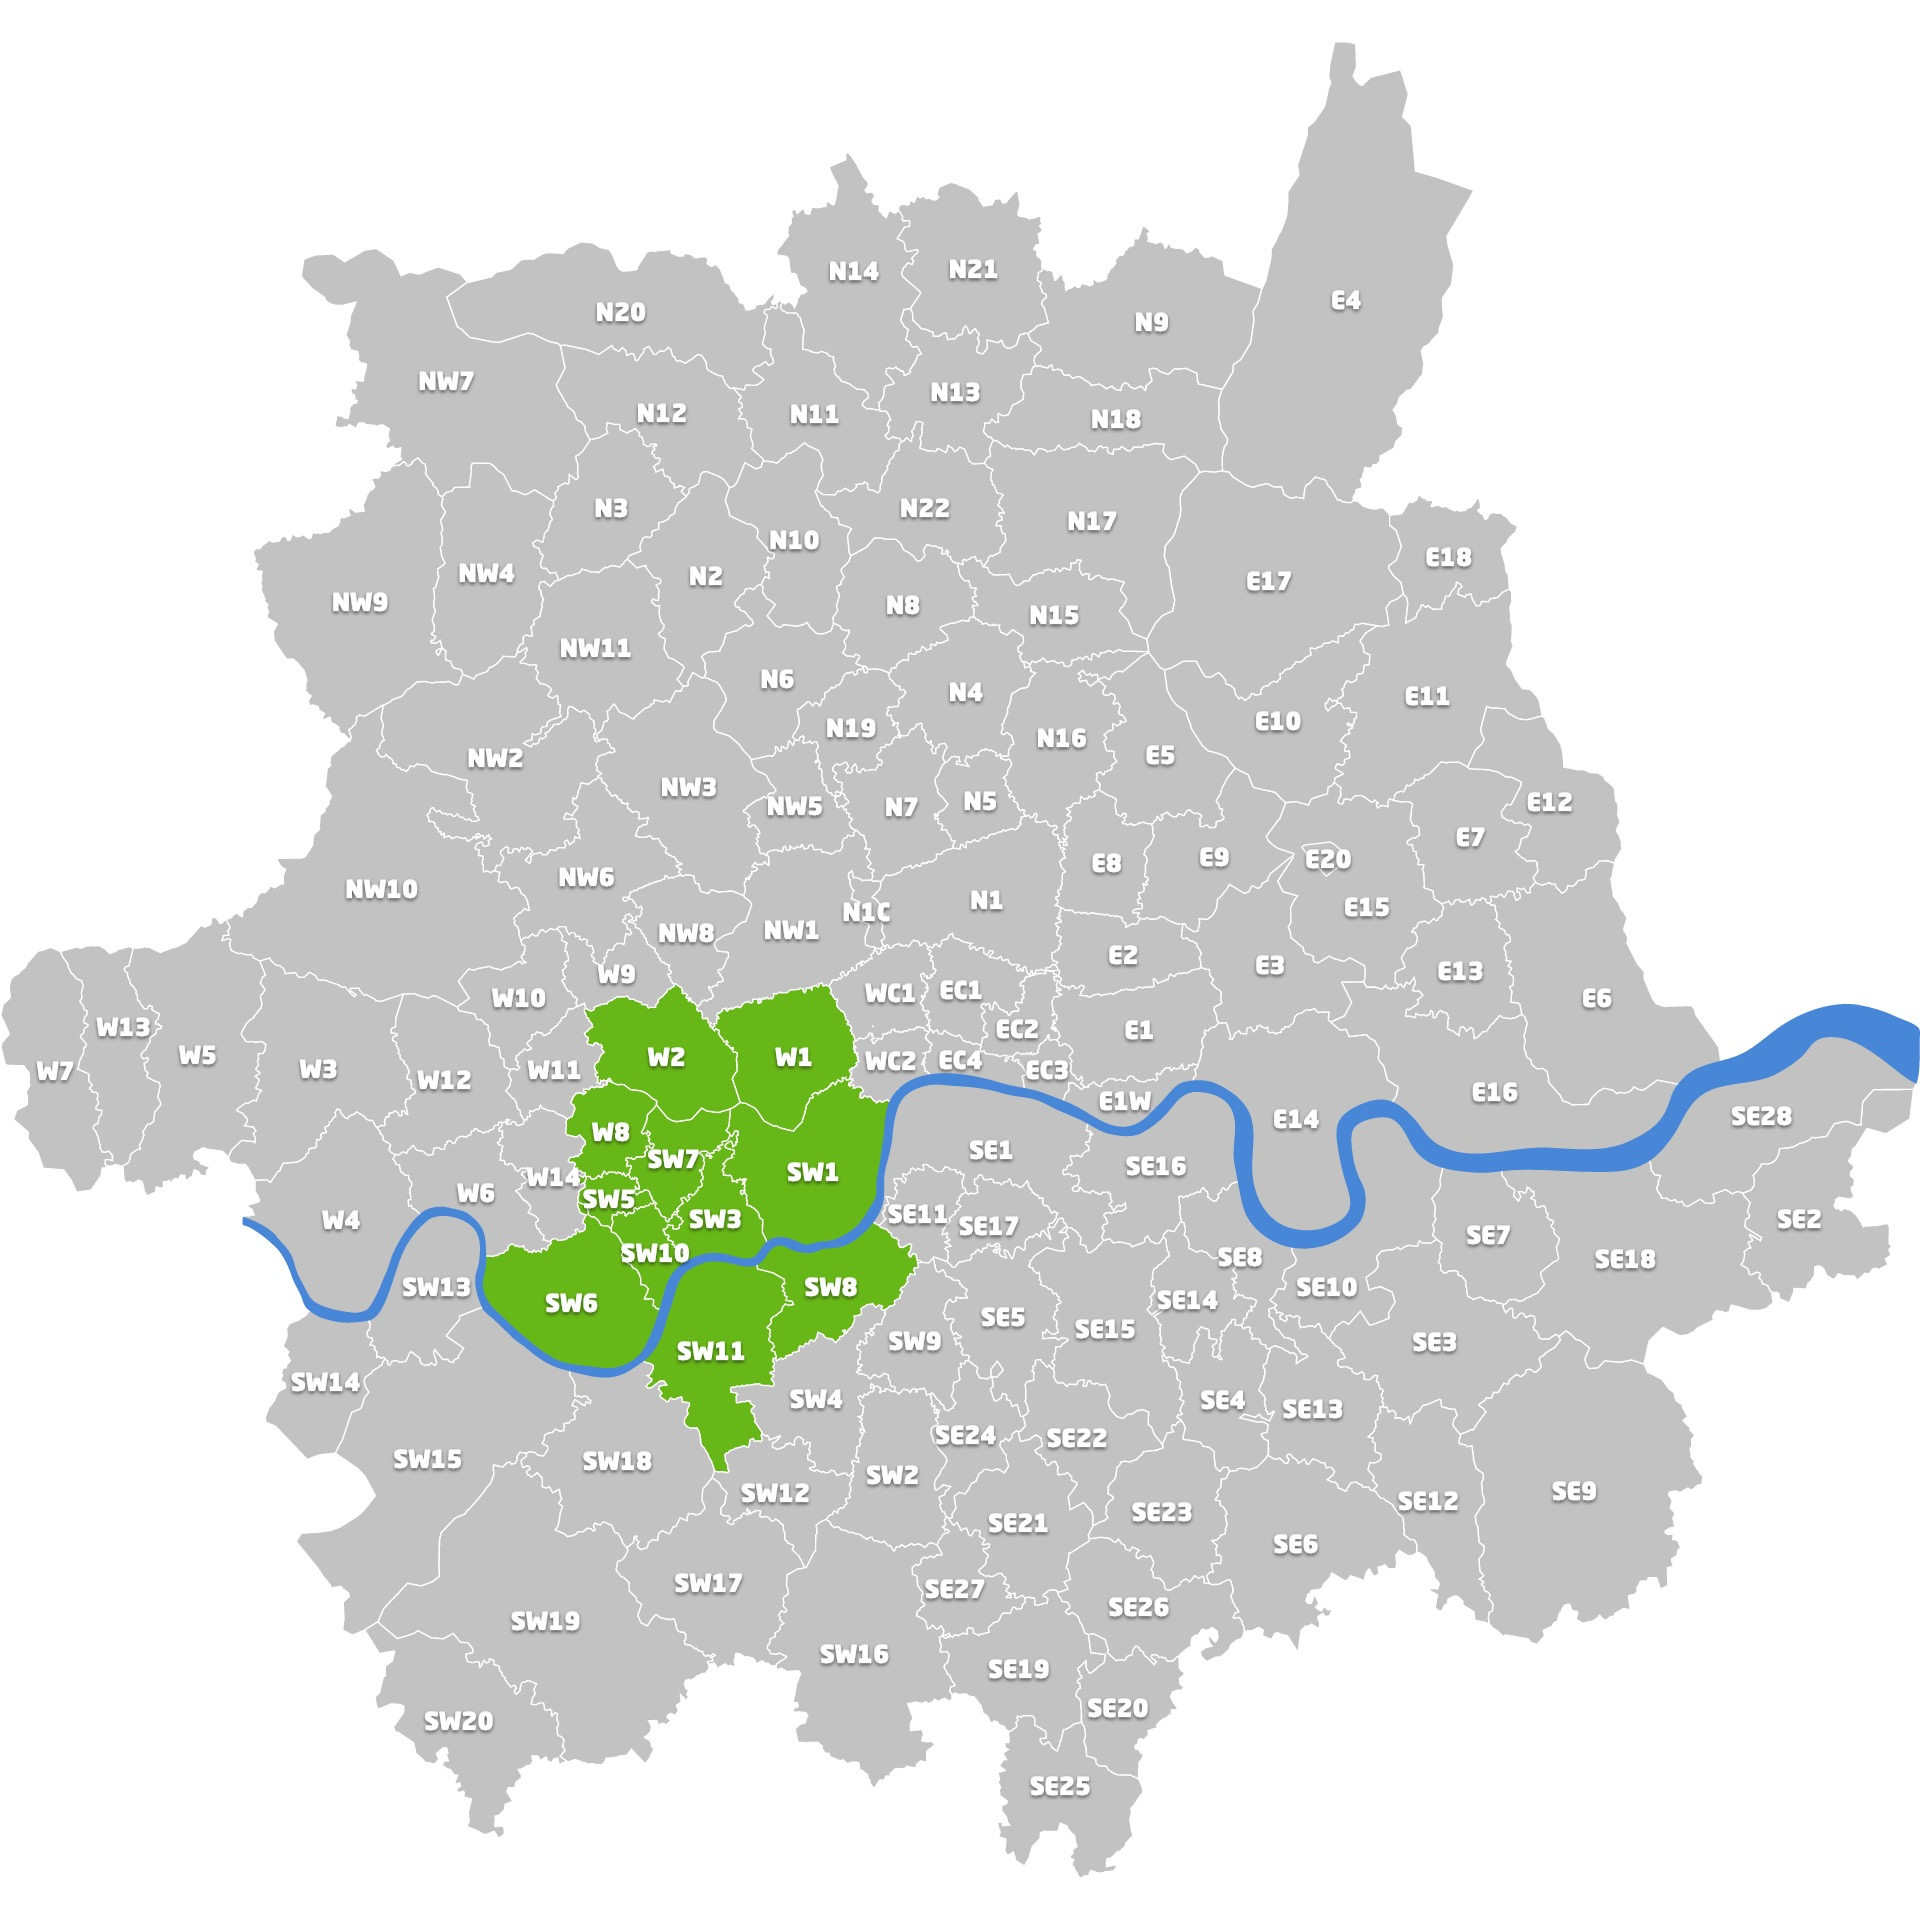 Map of London with green highlights around postcodes SW1, SW3, SW5, SW7, SW10